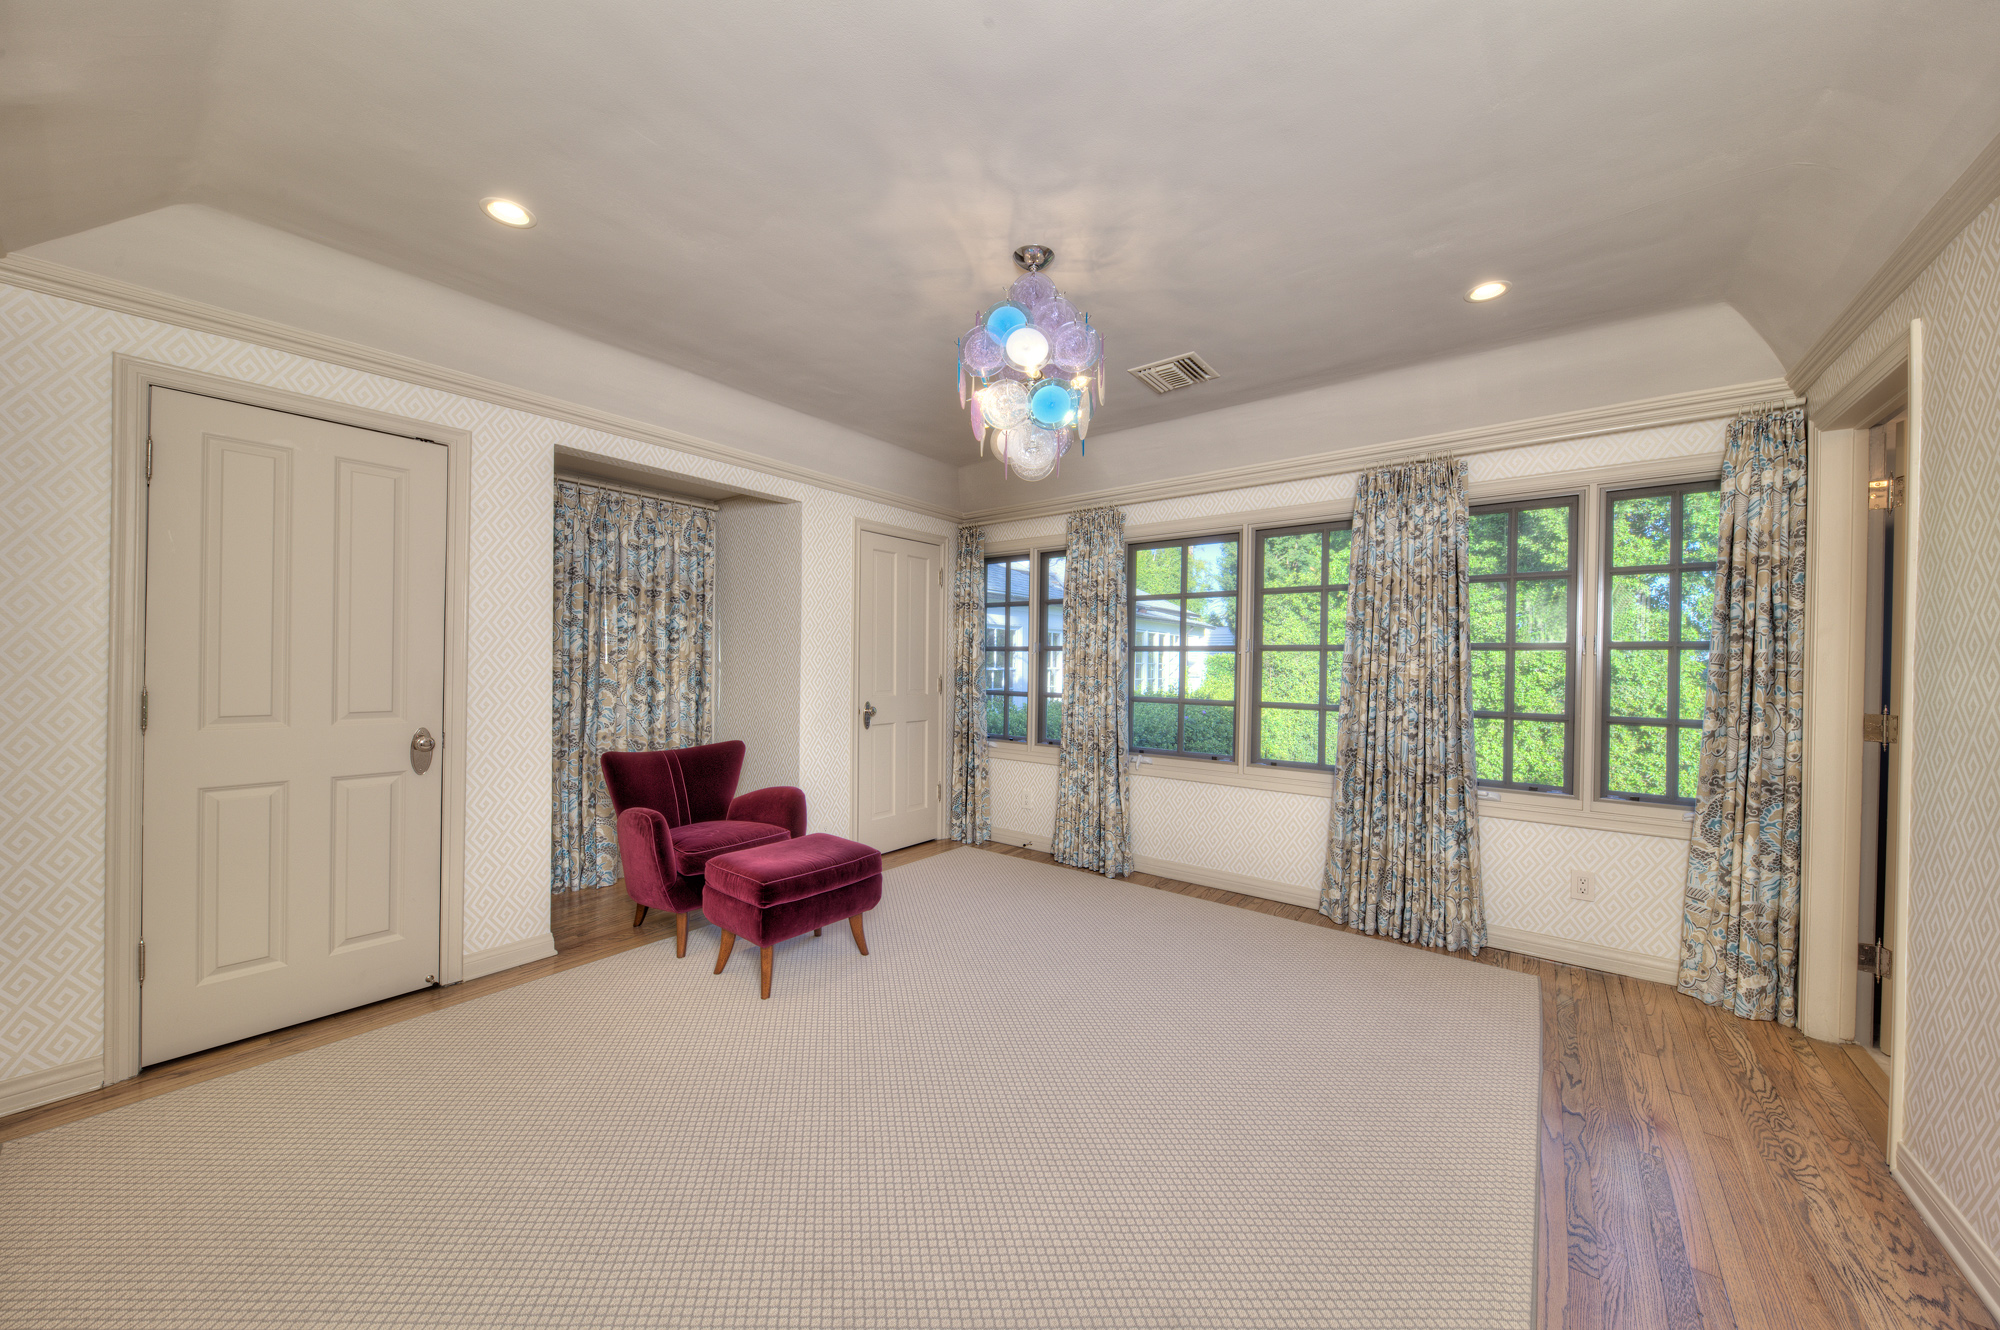 _D3X5484And8more_Interior_3b.jpg